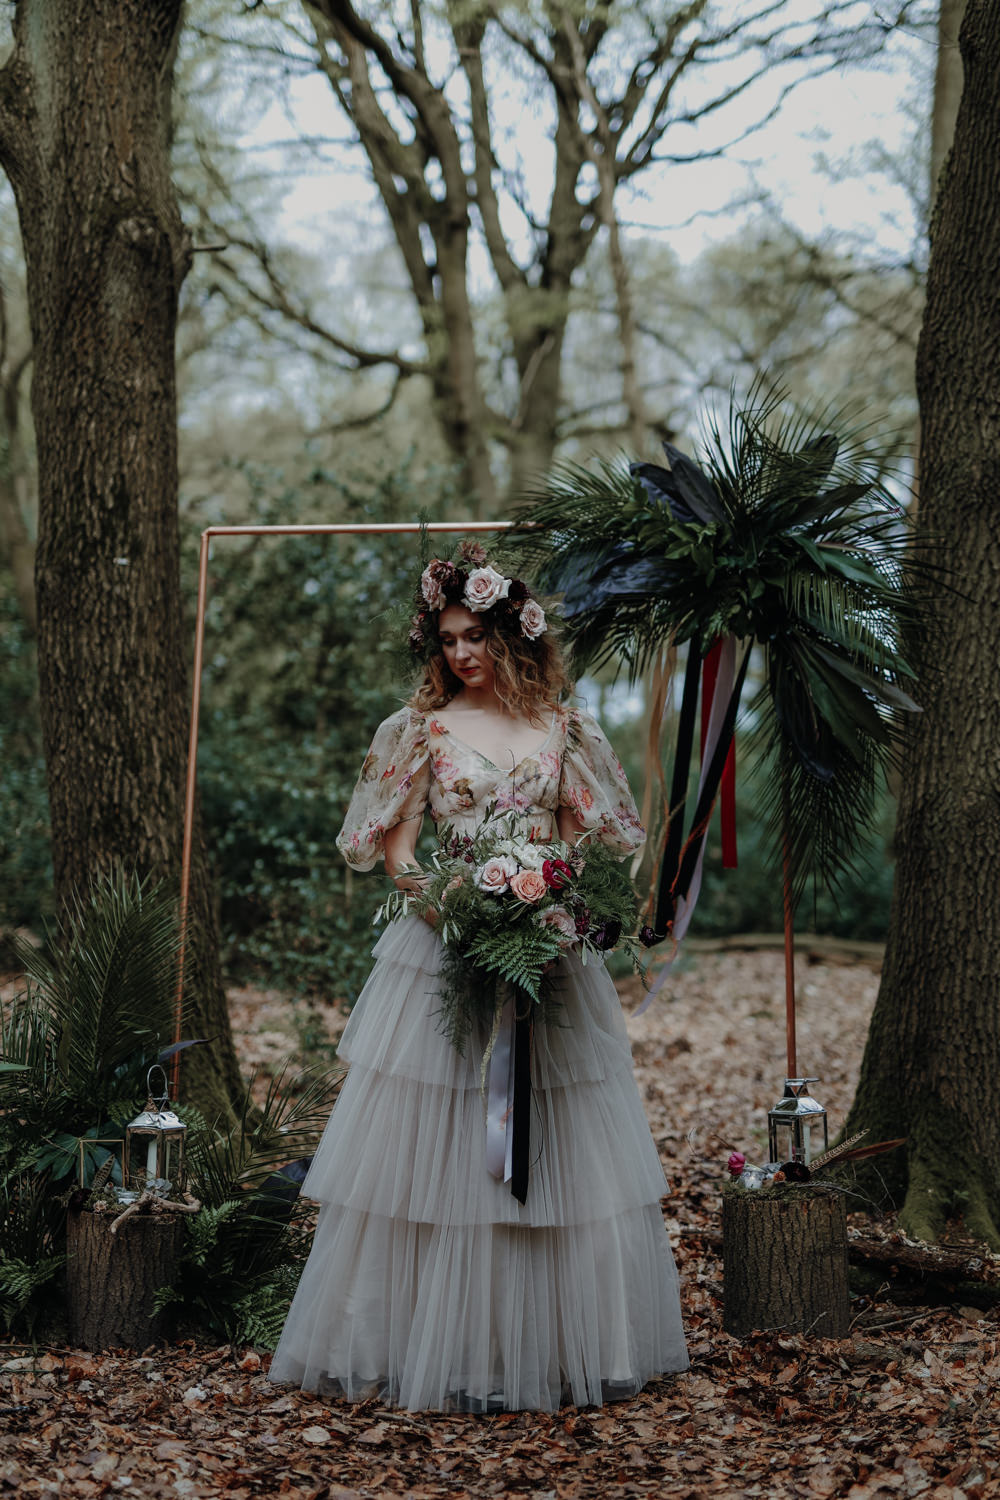 Bride Bridal Dress Gown Tulle Layer Skirt Balloon Sleeves Floral Top Modern Gothic Woods Wedding Ideas Ayelle Photography